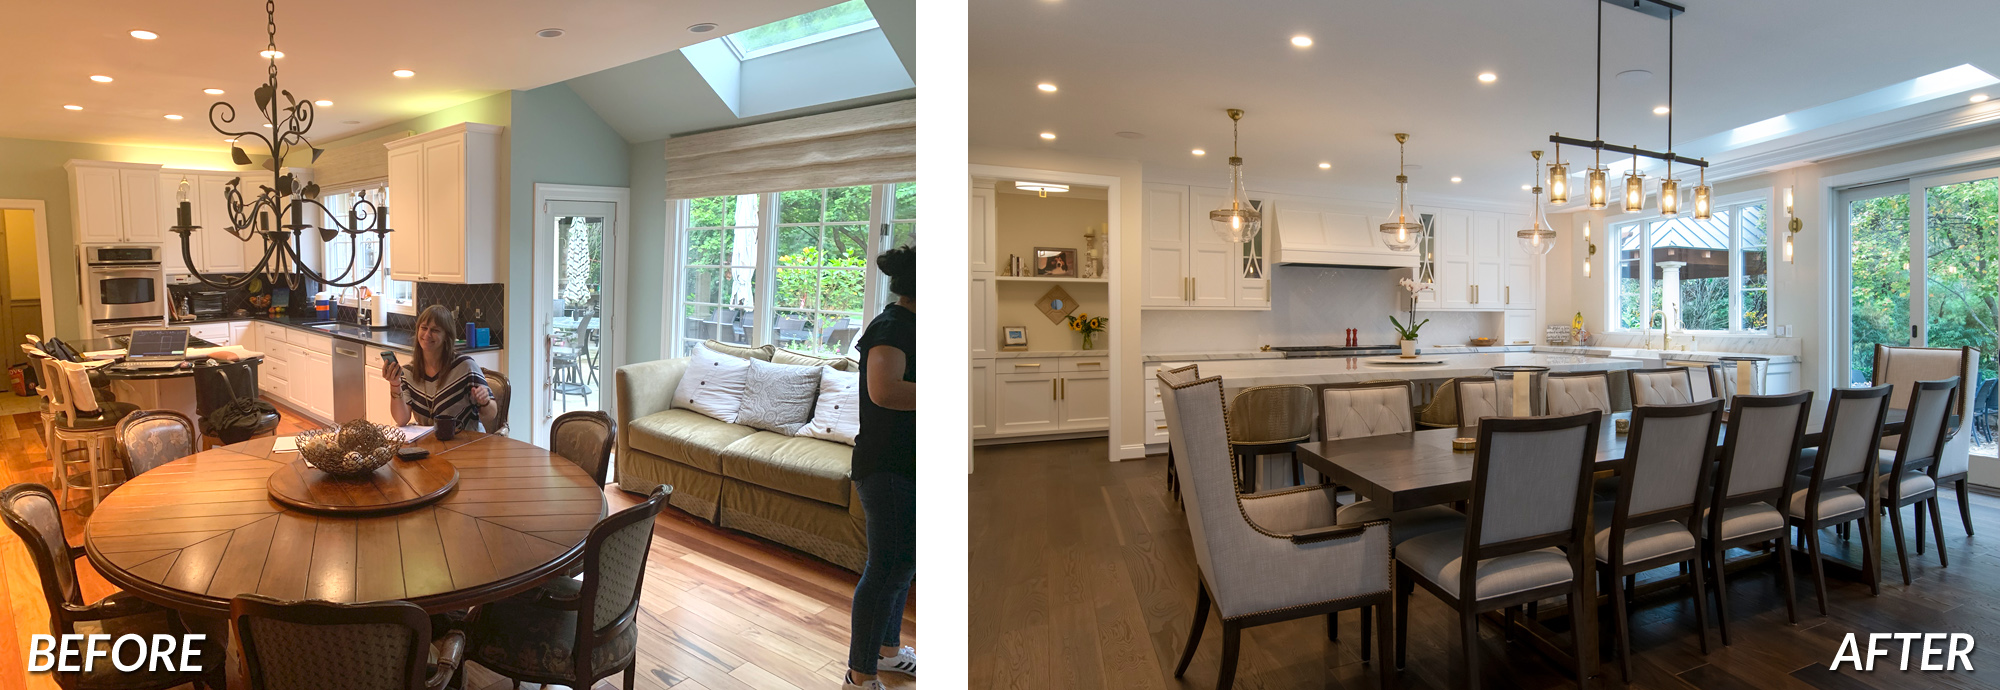 BOWA Design Build - Great Falls Kitchen Renovation Before & After